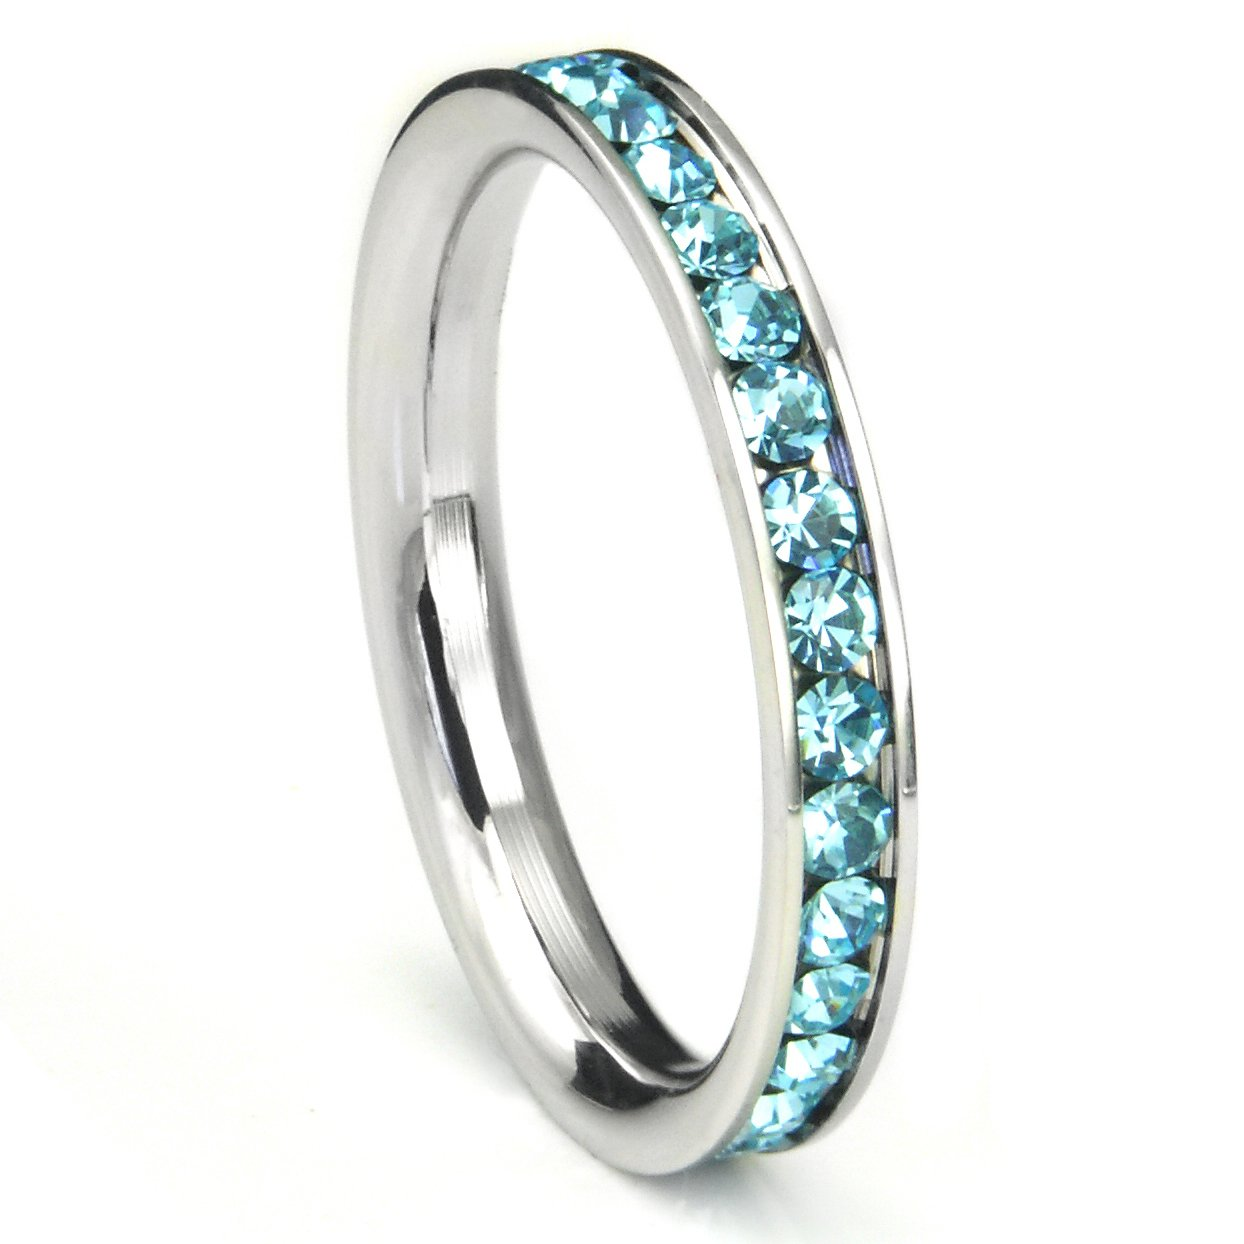 Metal Factory 316L Stainless Steel Aqua Light Blue Cubic Zirconia CZ Eternity Wedding 3MM Band Ring Sz 6